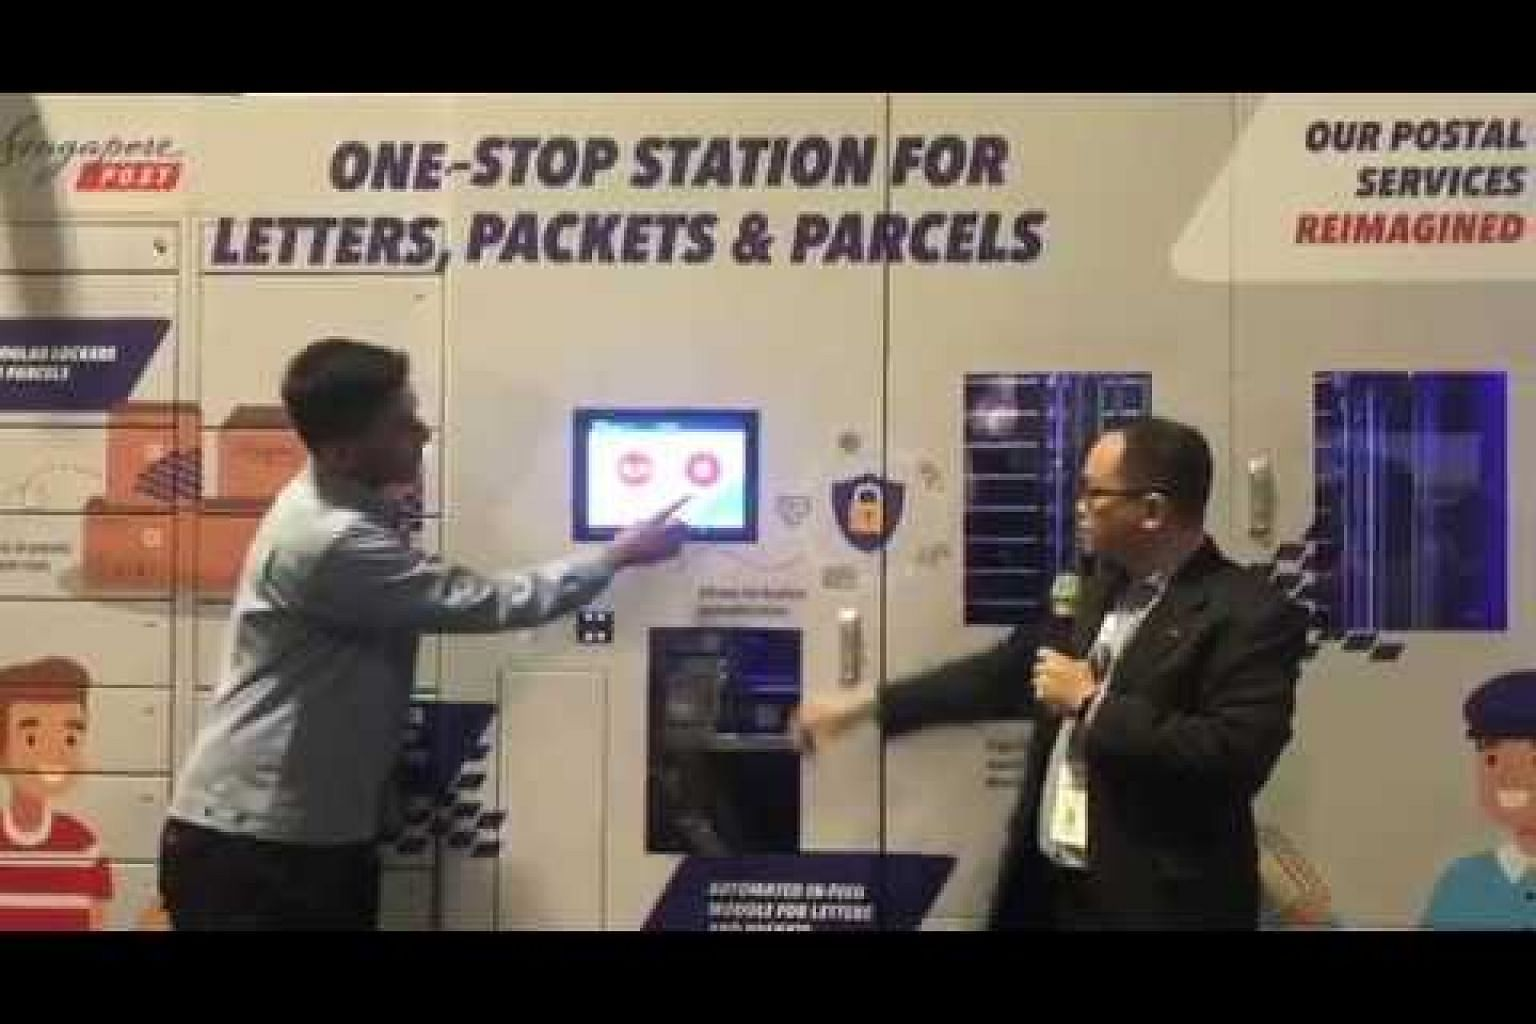 Demo of SingPost's smart stamp and letterbox system